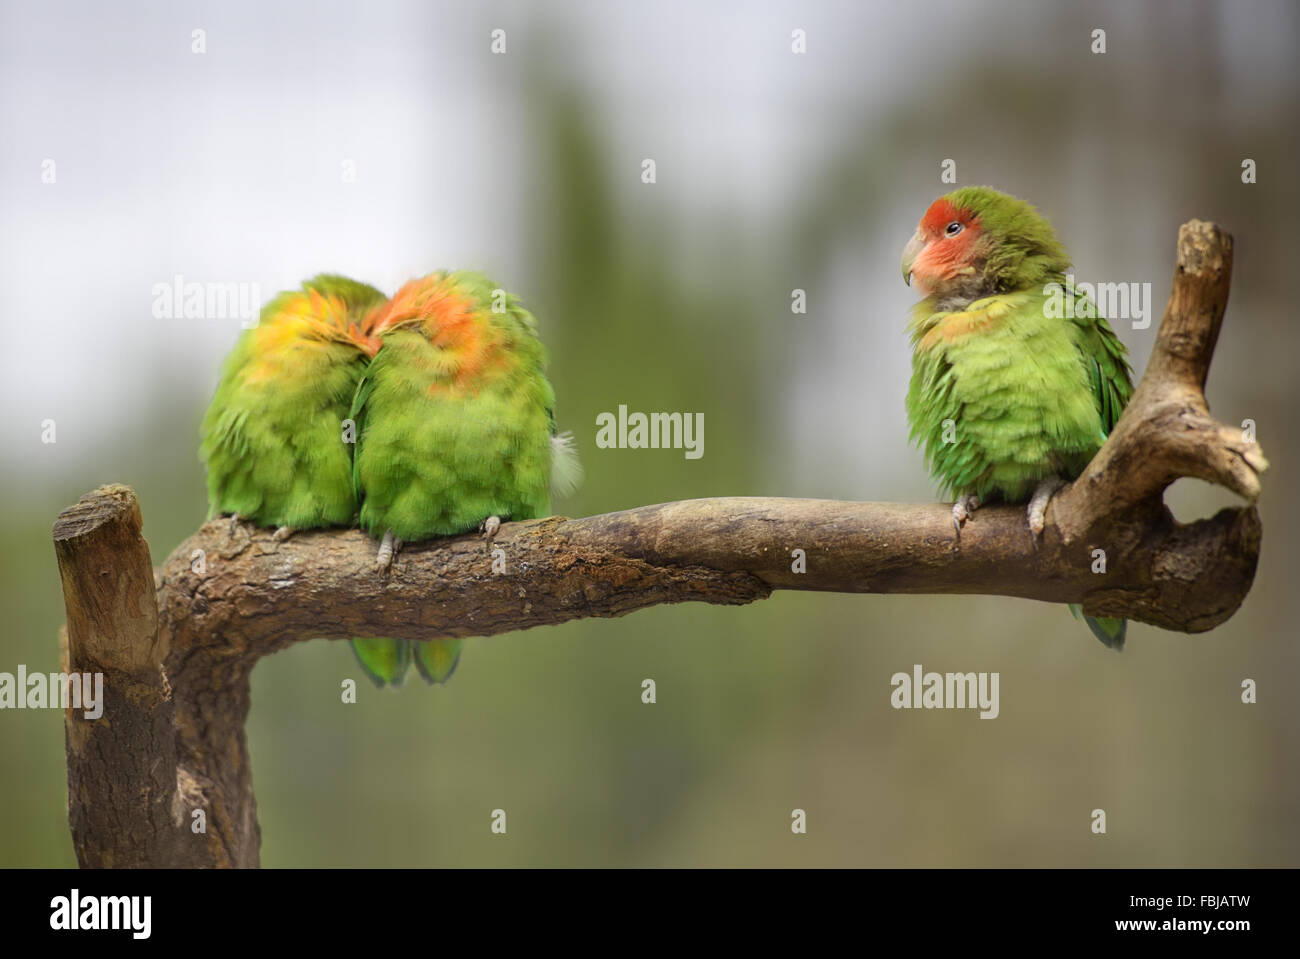 Three lovebirds on a branch - Stock Image